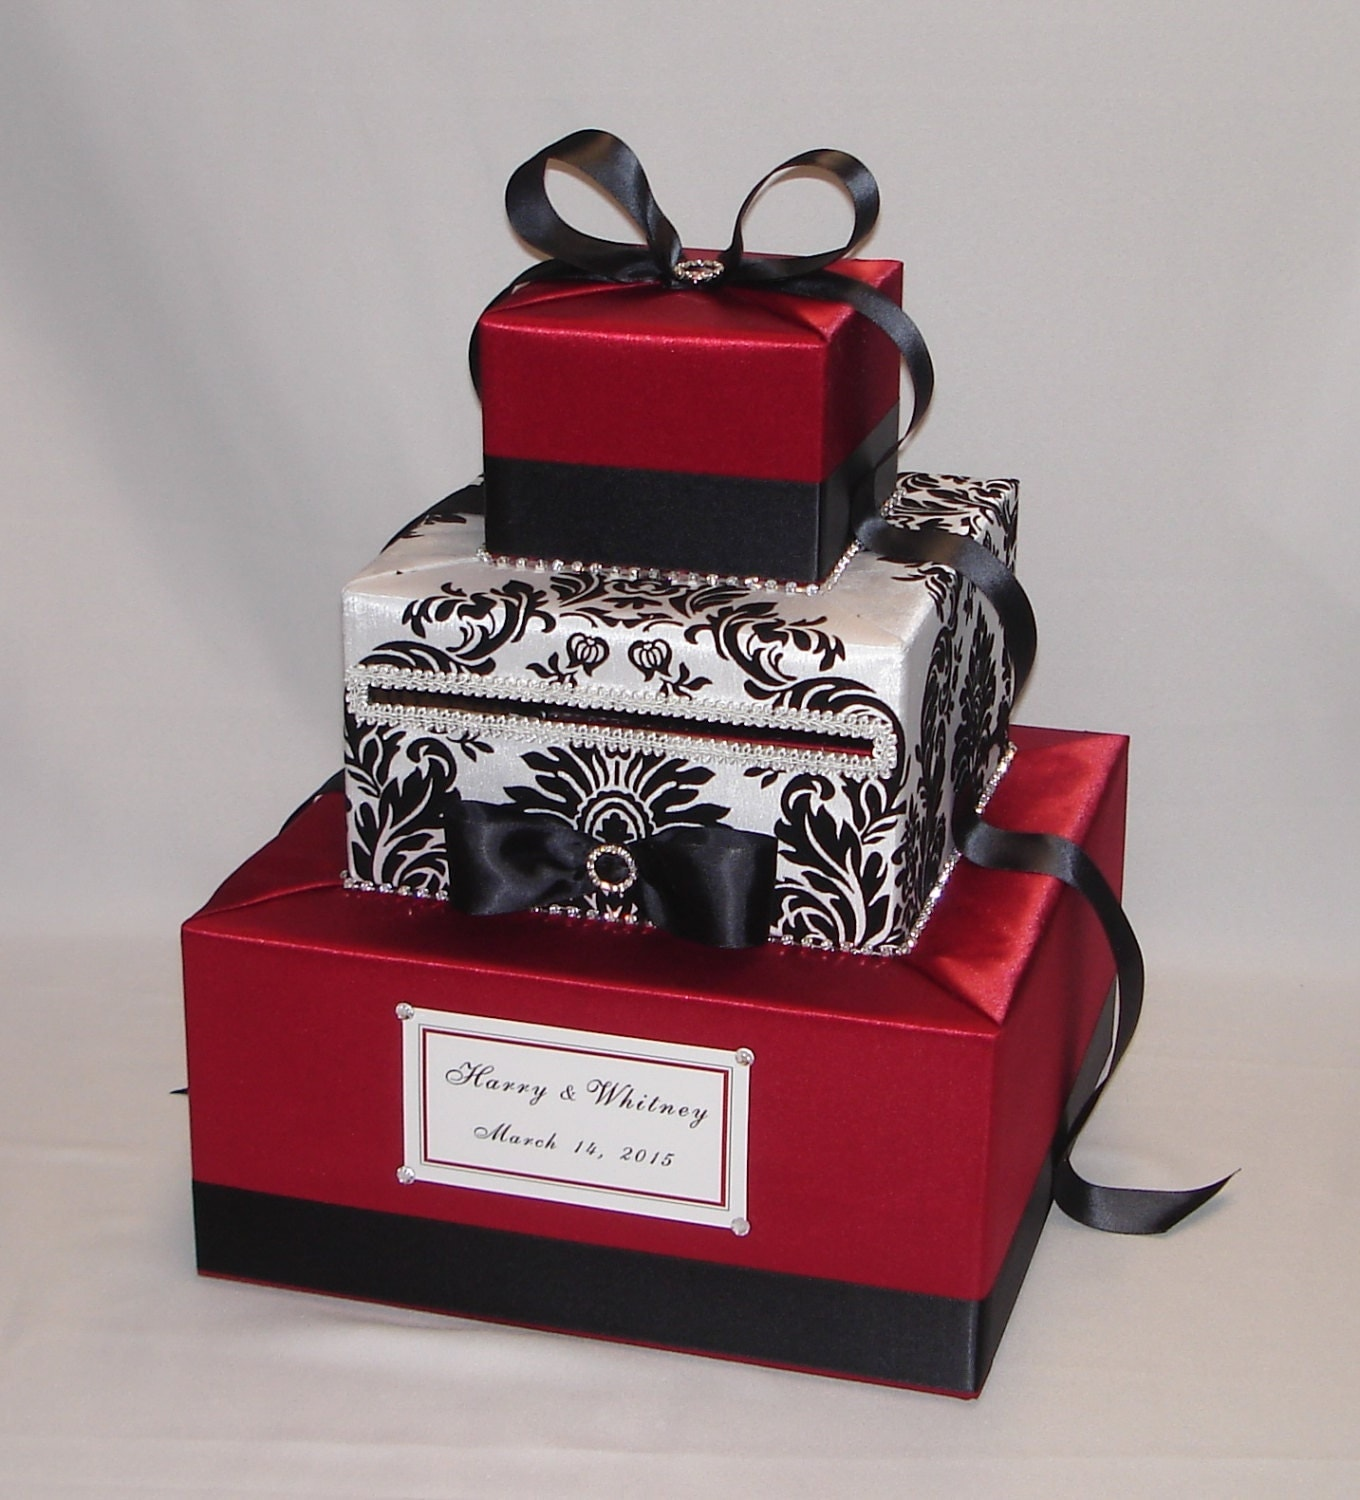 Card Box Ideas For Wedding Reception: Red Black And White Damask Wedding Card Box Any Colors